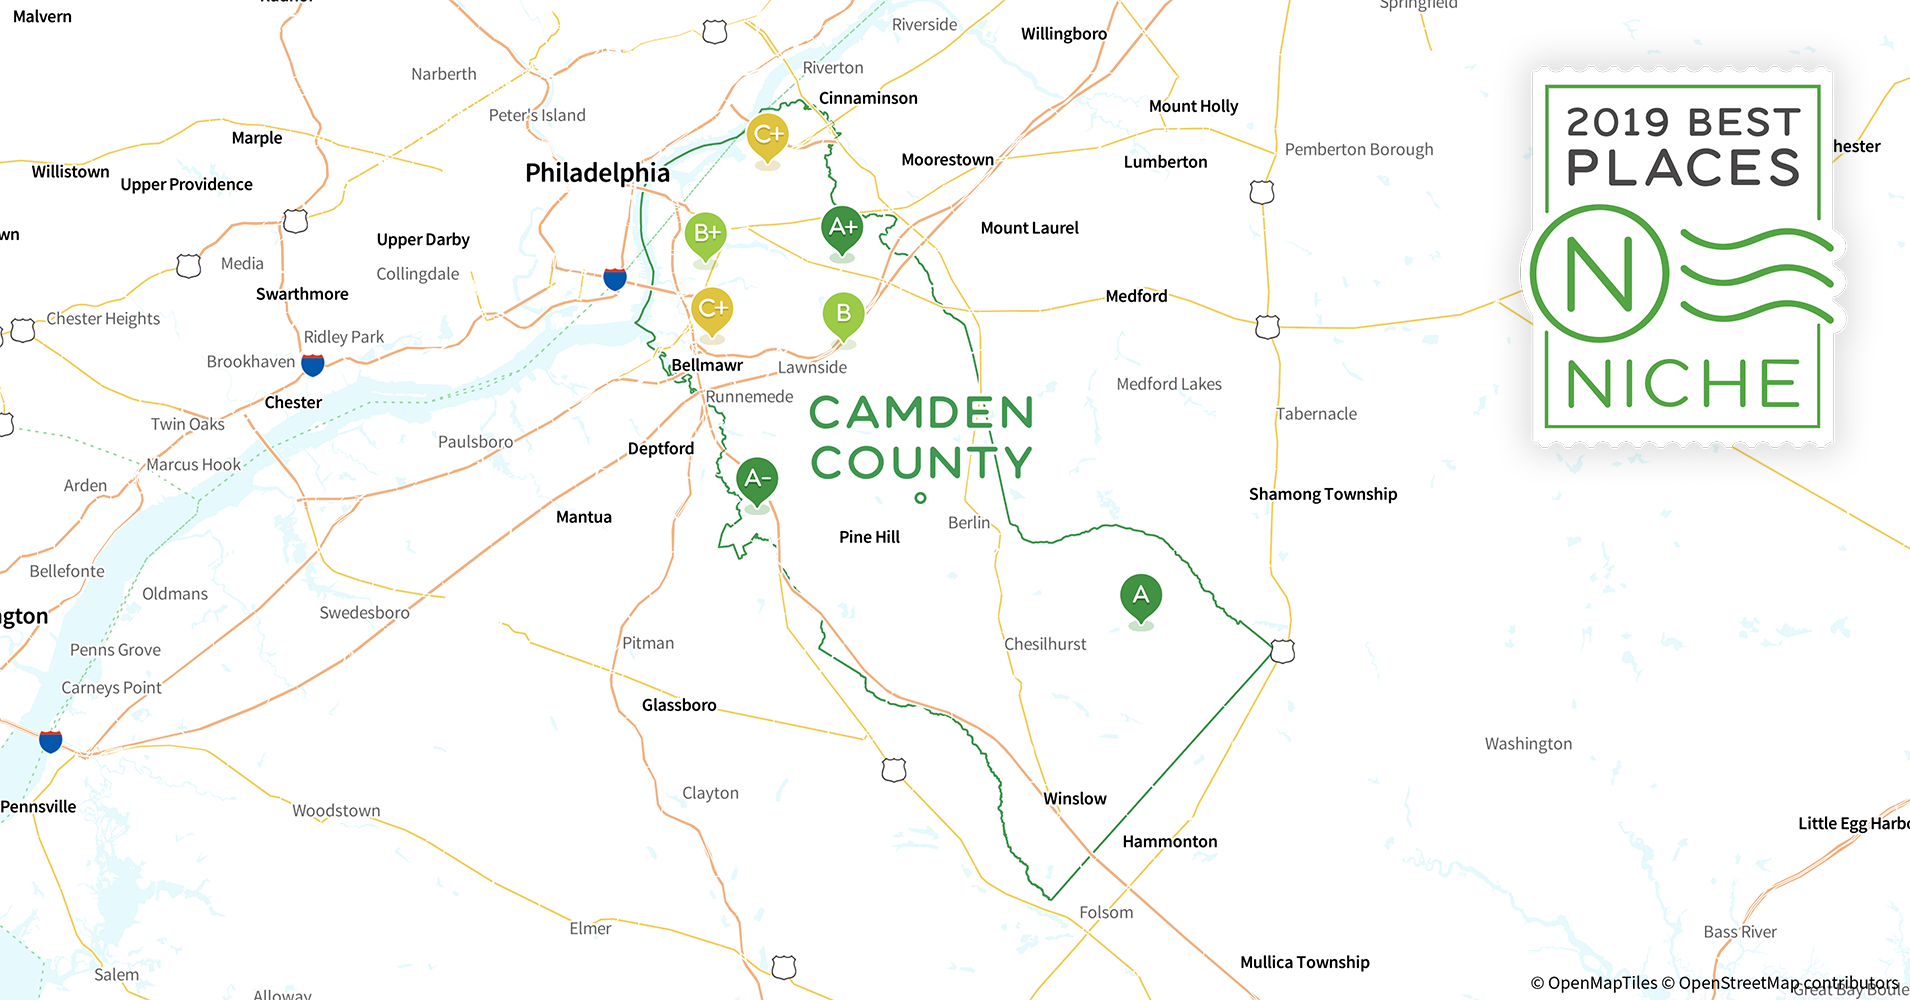 2019 Best Places to Live in Camden County, NJ - Niche Camden County College Map on manor college map, cayuga community college map, schenectady community college map, woodbury college map, western technical college map, corning community college map, bloomfield college map, city college of san francisco map, cloud county community college map, davidson county community college campus map, henderson community college map, cleveland community college map, folsom college map, clinton community college map, montgomery county college map, nassau community college building map, saint peter's university map, rutgers university college map, butler community college map, atlantic cape community college map,